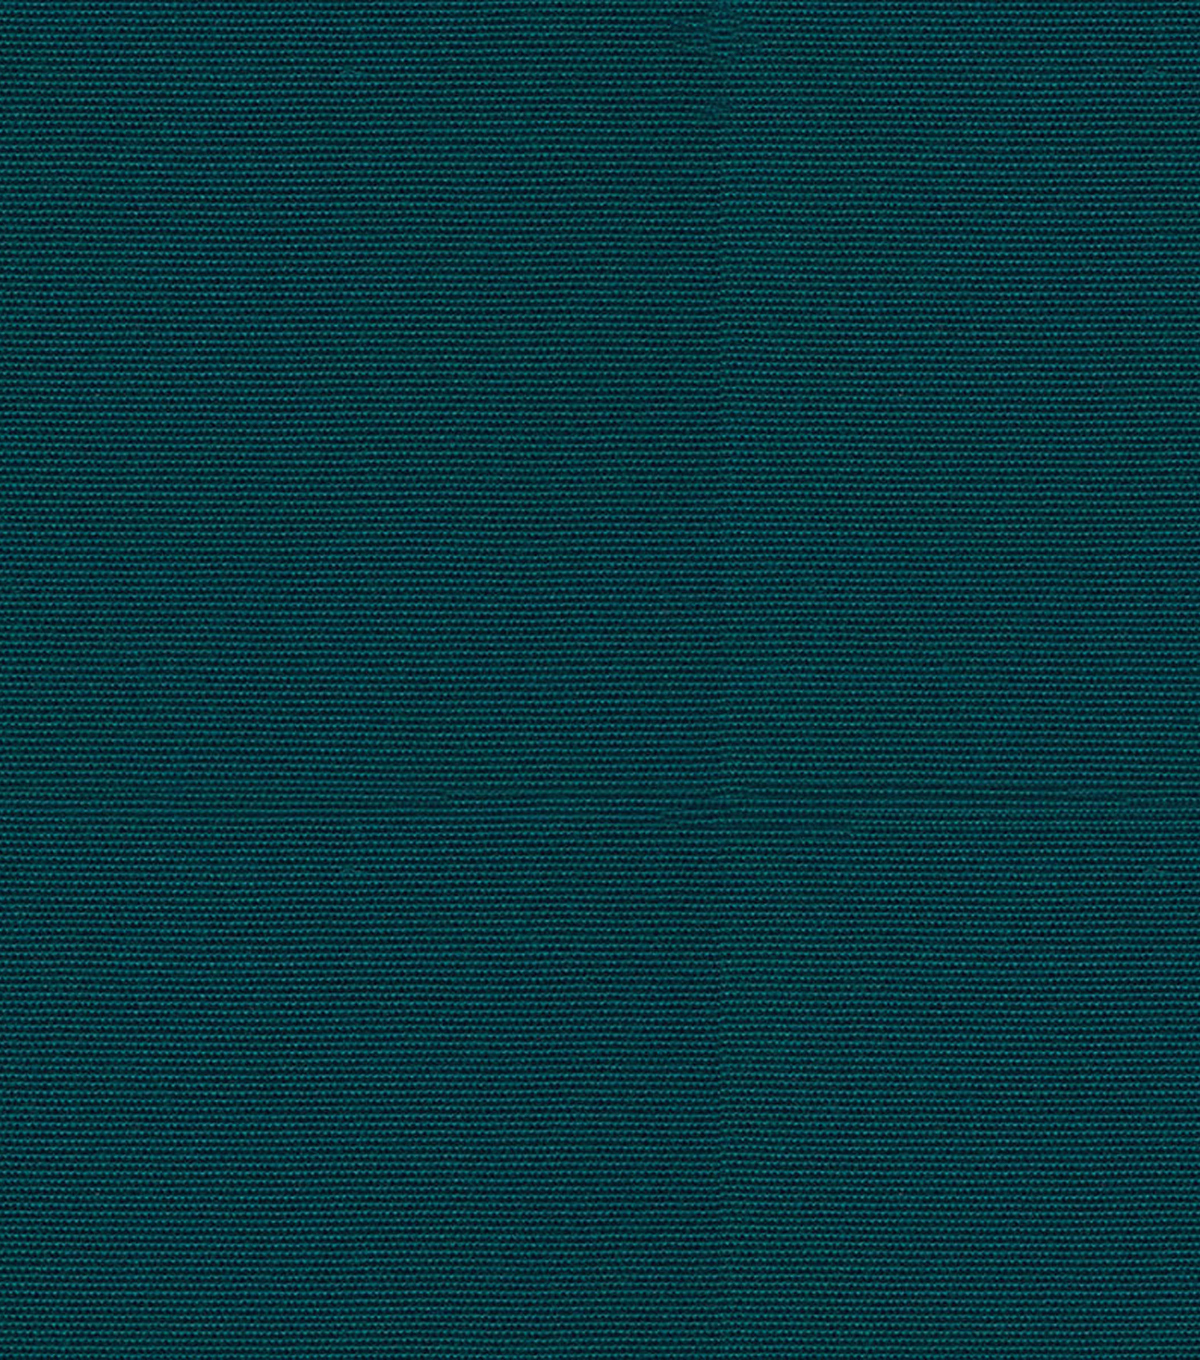 Sunbr Plus 60 8443 Persian Green Swatch